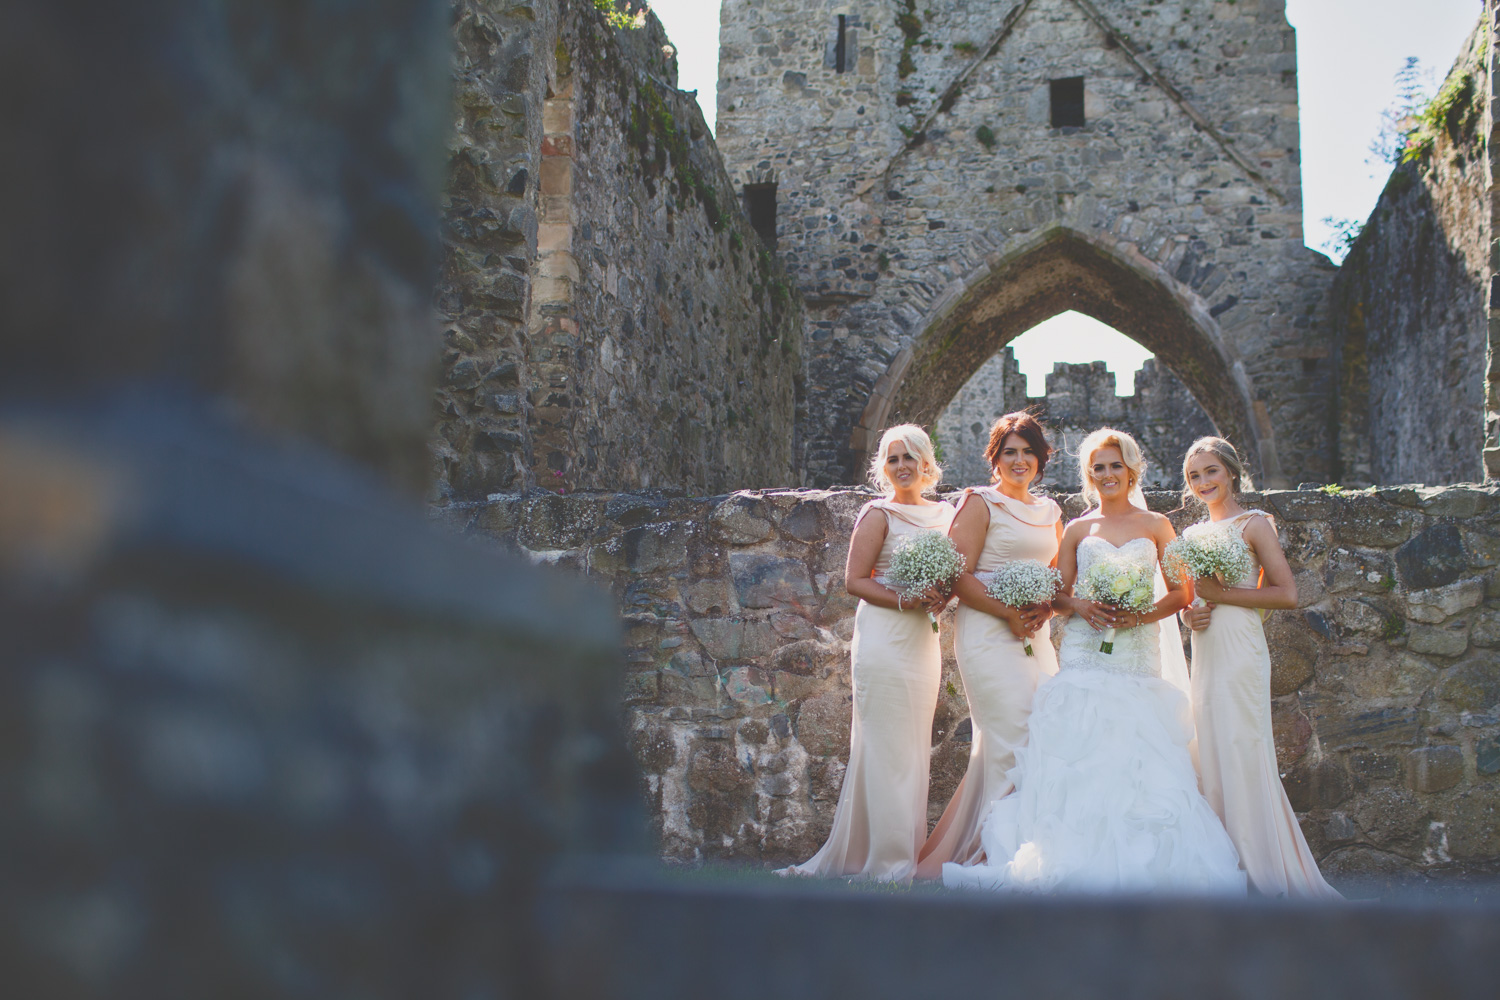 Mark_Barnes_wedding_photographer_Northern_Ireland_Wedding_photography_Carlingford_Four_Seasons_Wedding-42.jpg